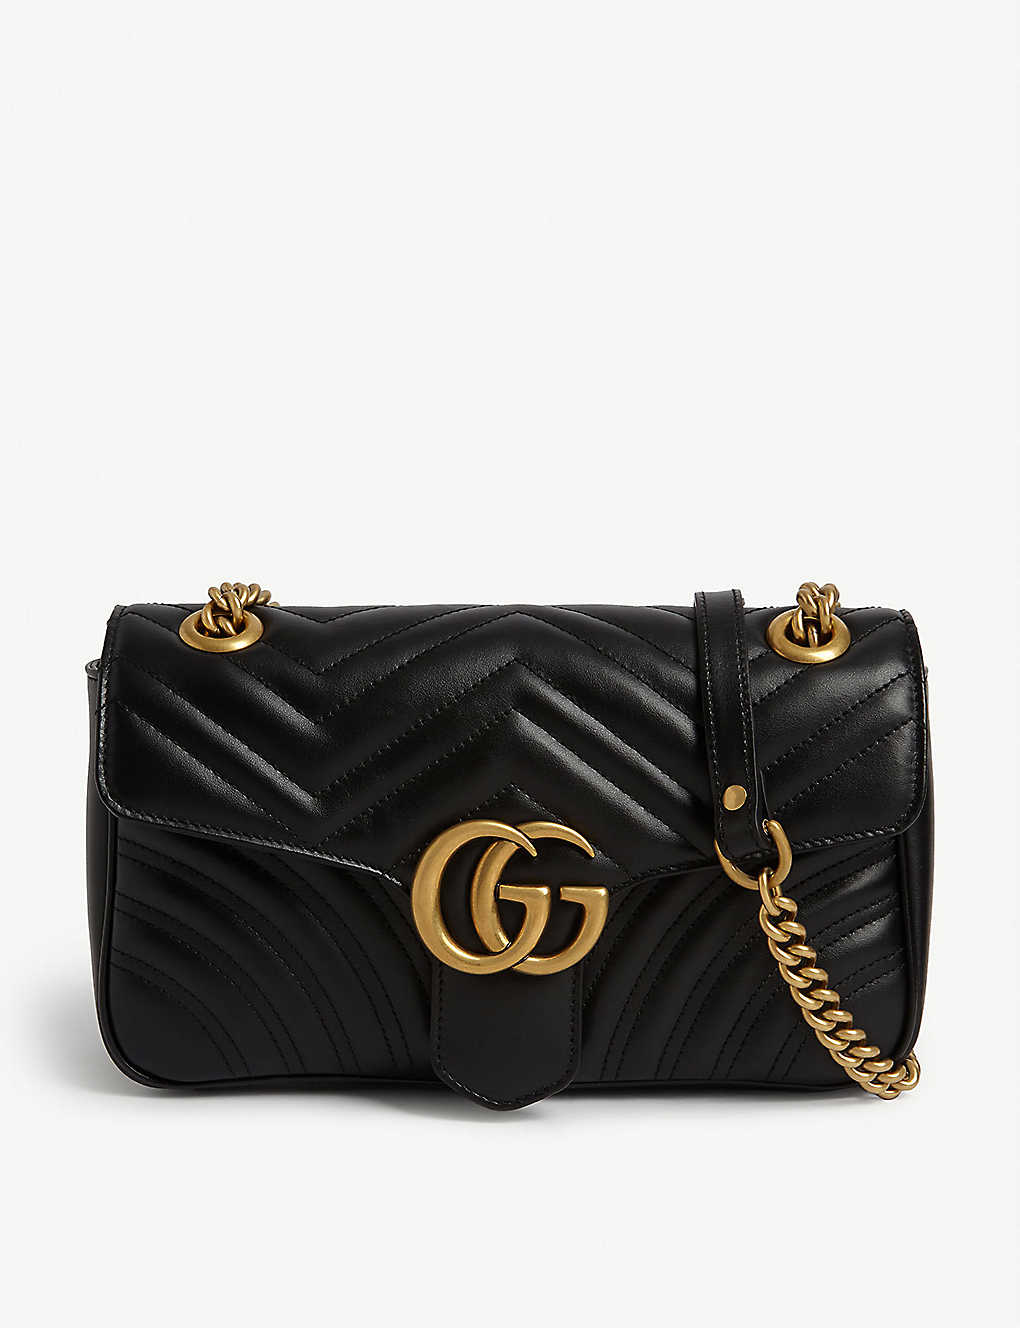 7e05c7587131 GUCCI - Marmont leather shoulder bag | Selfridges.com